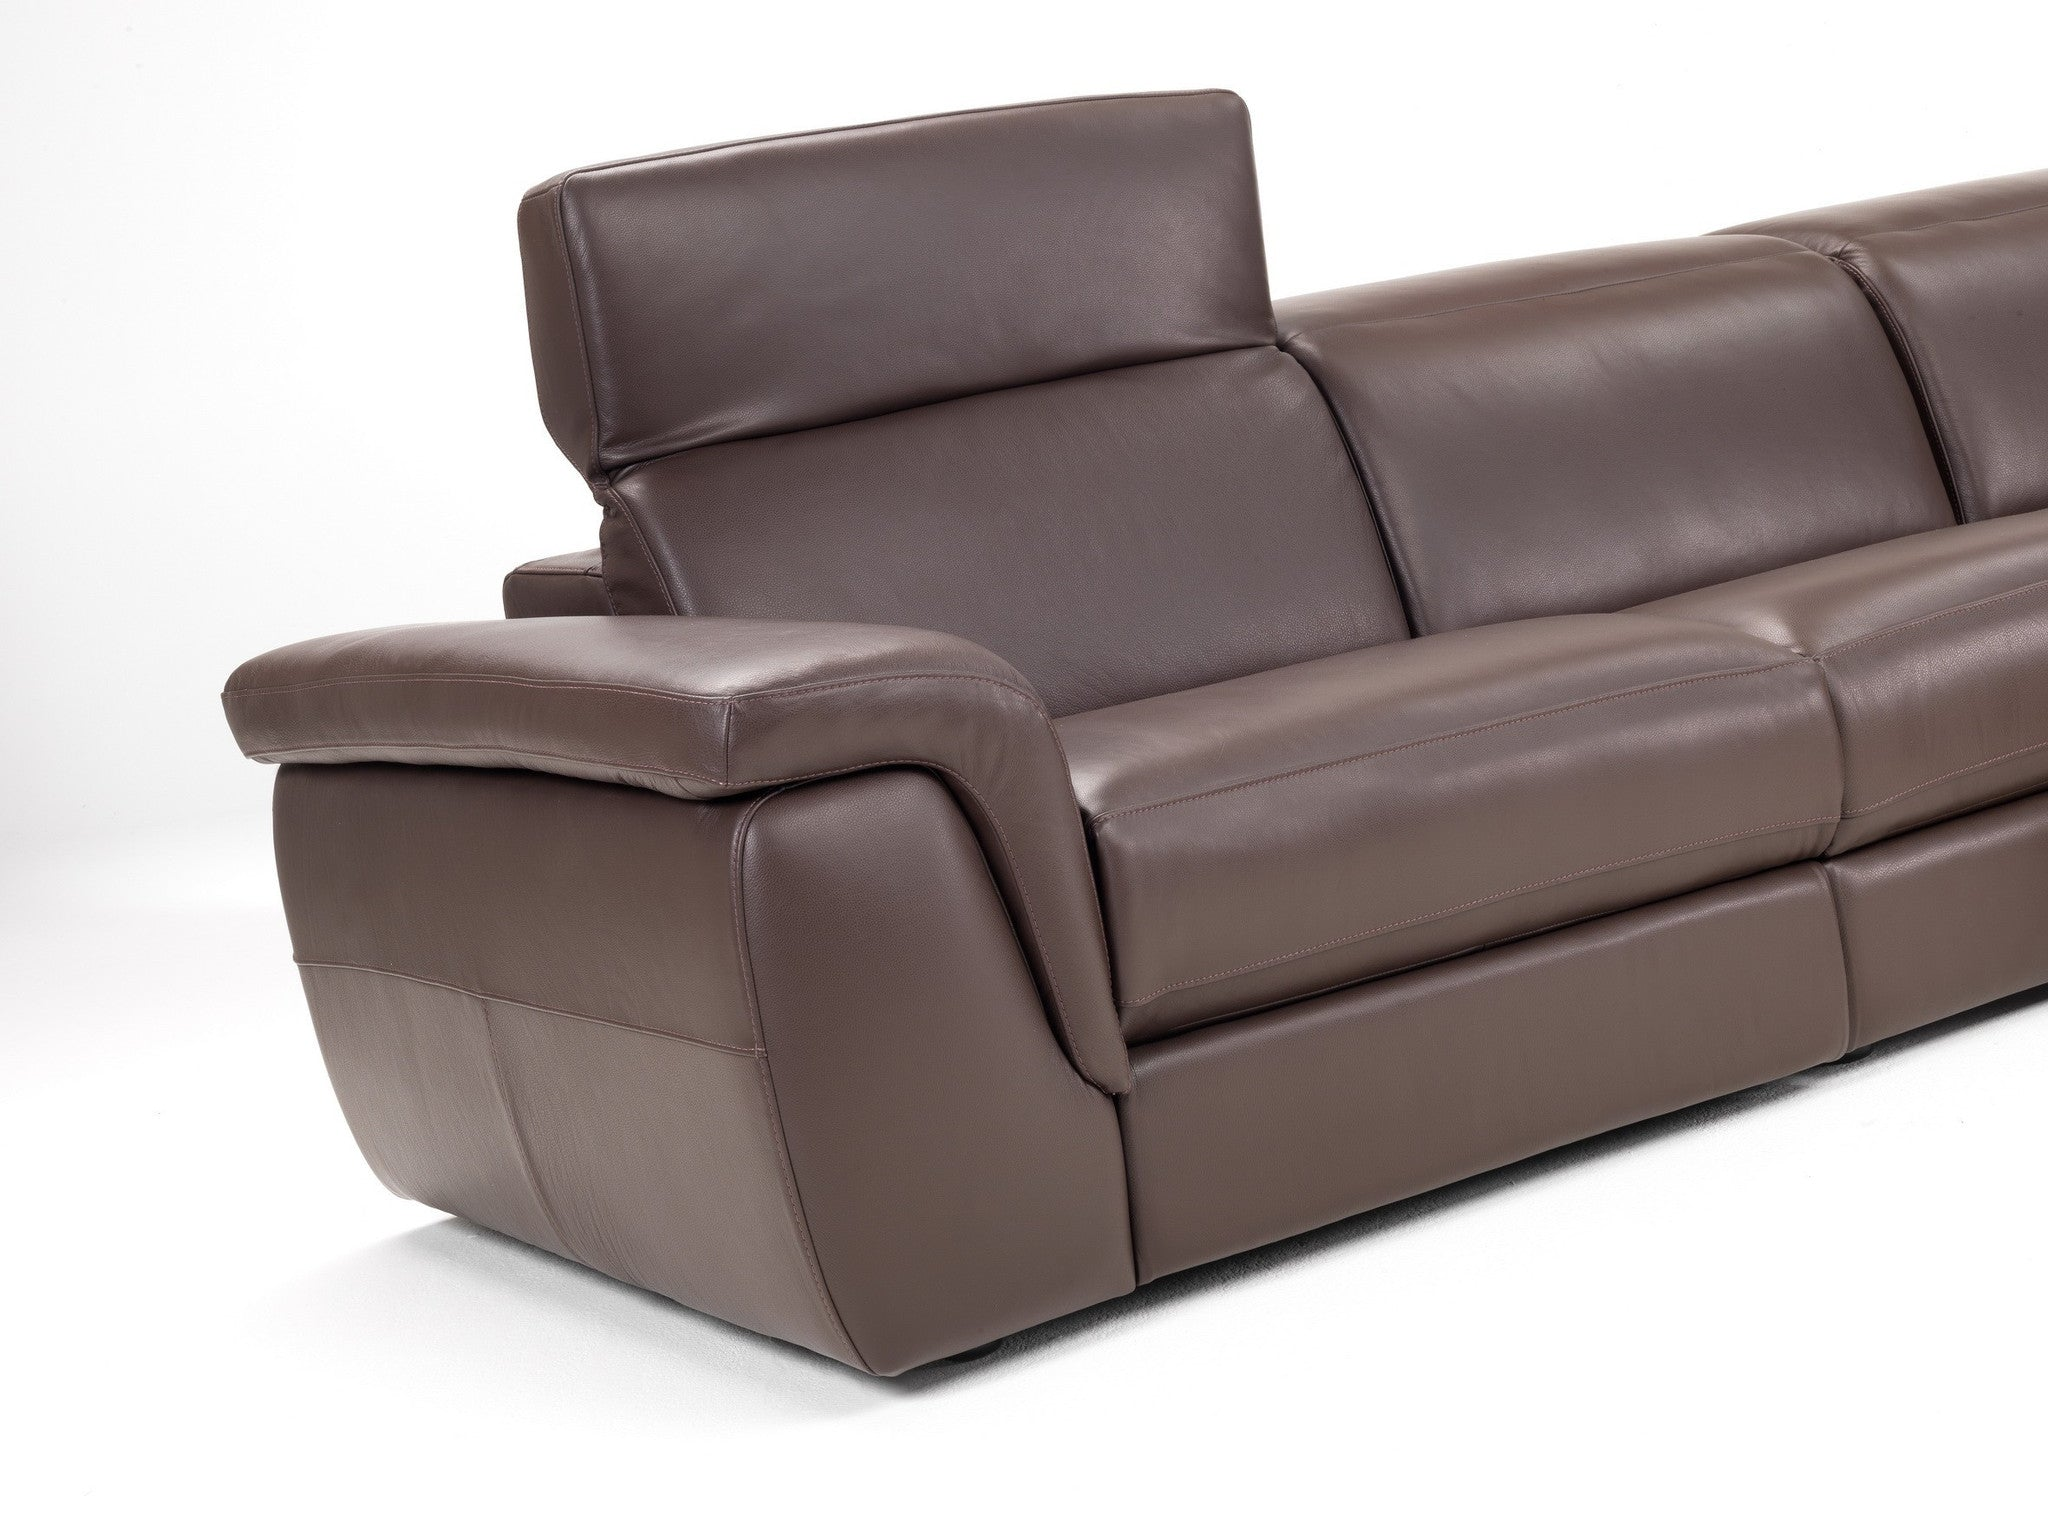 Calle Power Recliner Sectional Euro Living Furniture : calle sectional sofa chocolate leather idp 3 from www.eurolivingfurniture.com size 2048 x 1536 jpeg 327kB